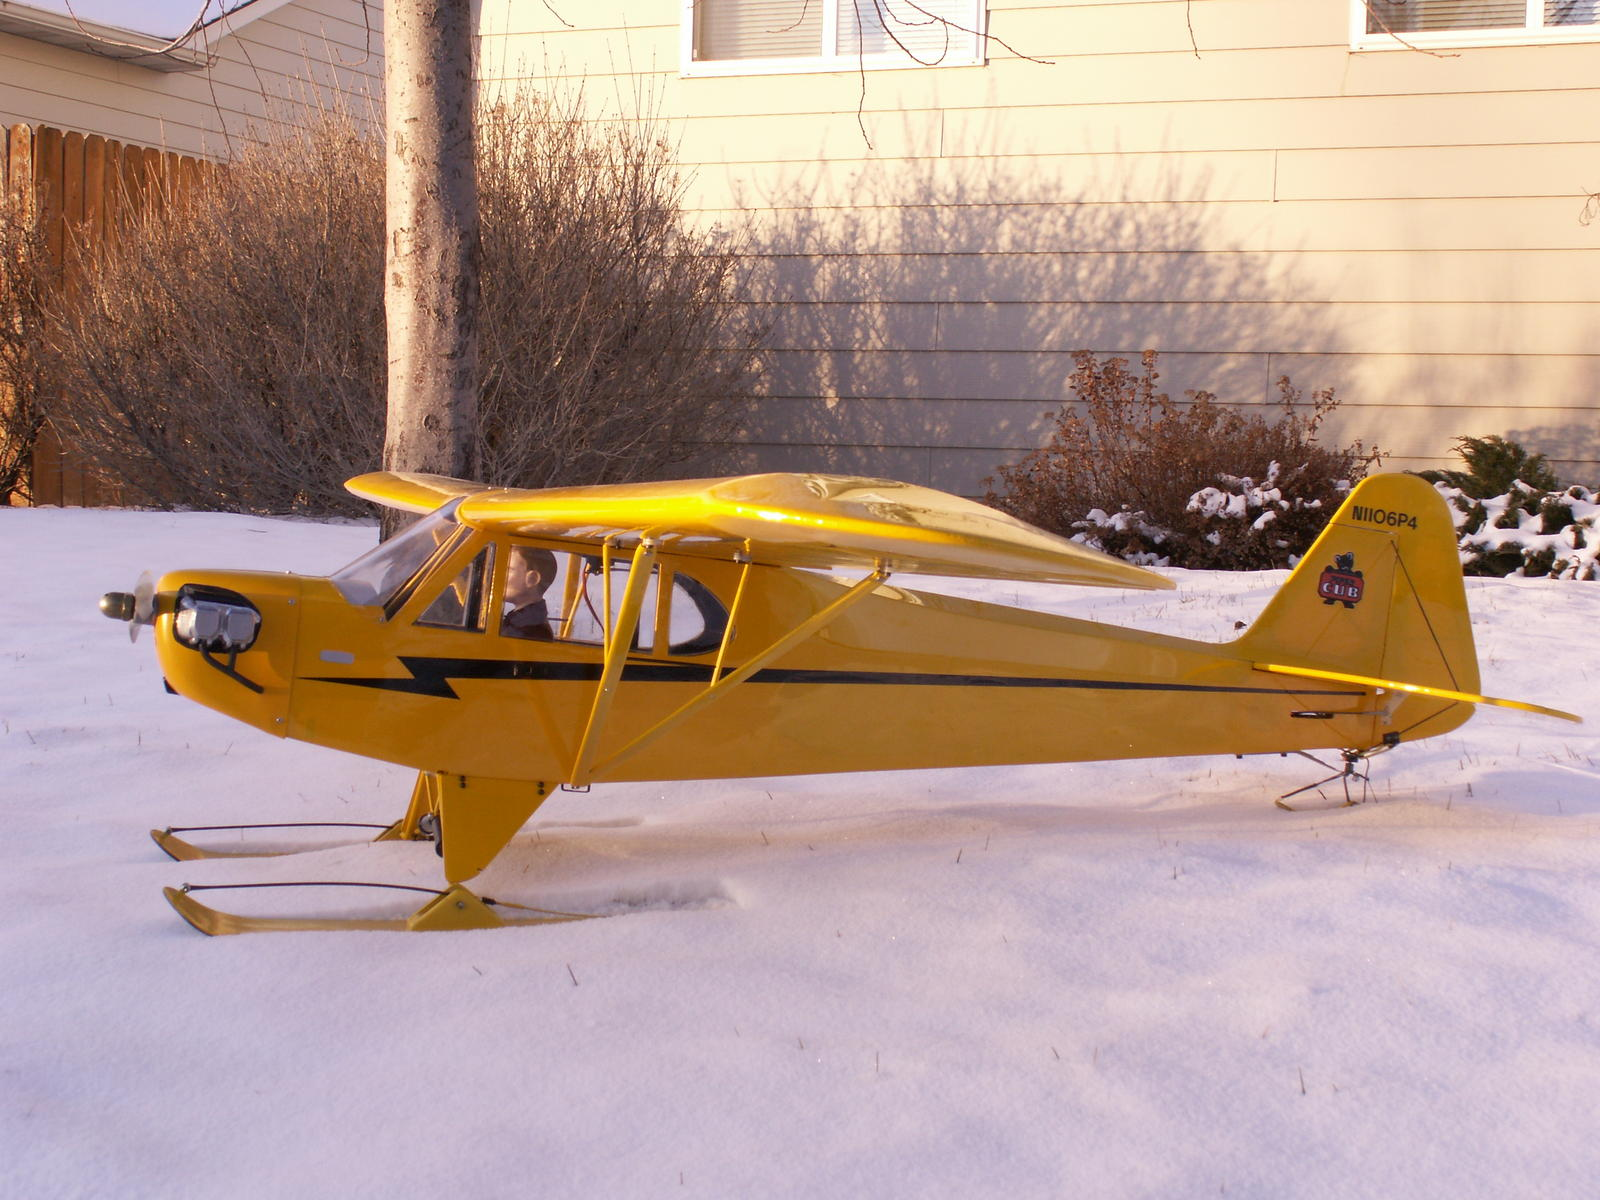 This is my Old Goldberg cub, I don't get to fly it as much as I'd like but it's a fun plane